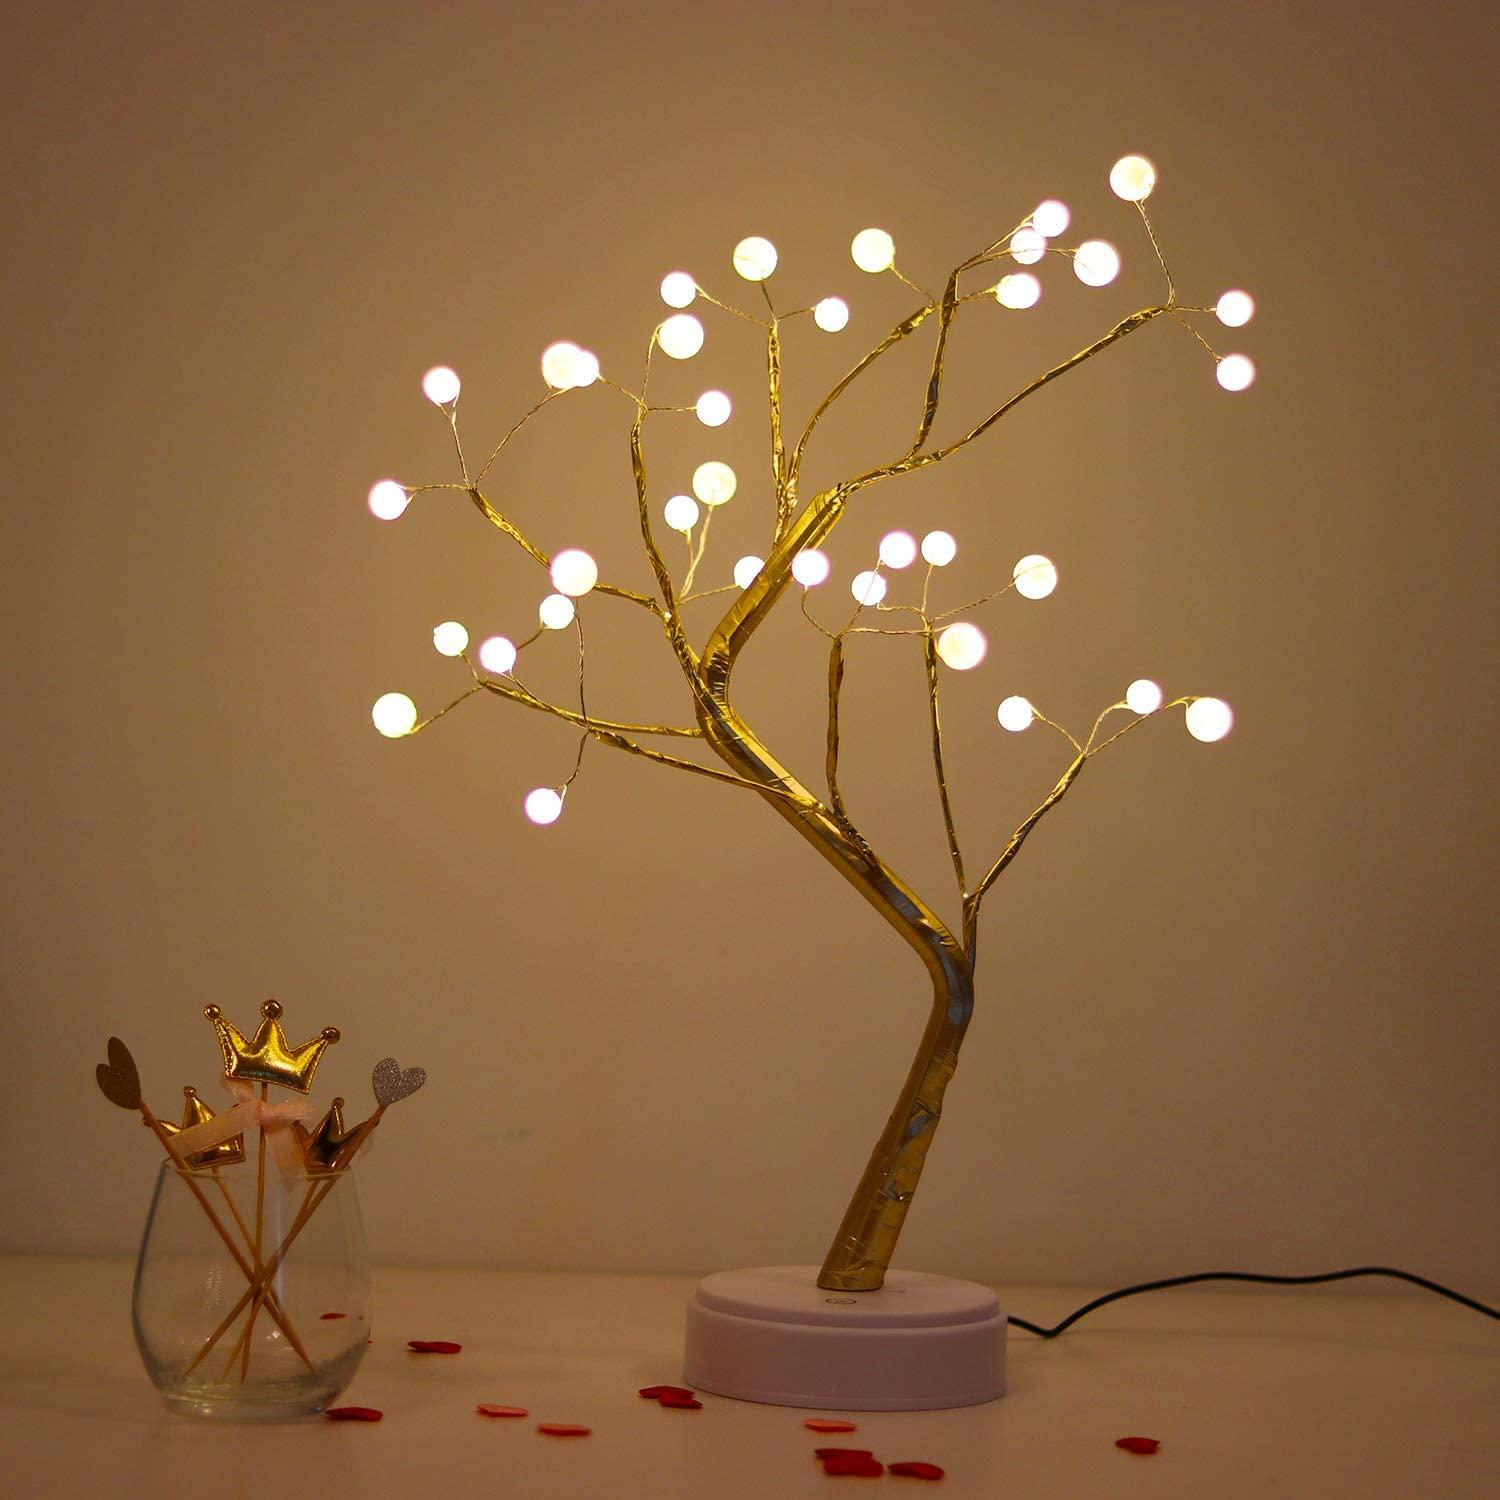 20 Tabletop Bonsai Tree Light With 36 Pearls Led Mood Light Pearl Branch Lights For Holiday Home Decorative Night Light For Living Room Led Grow Led Headlight From Phylliss 9 79 Dhgate Com